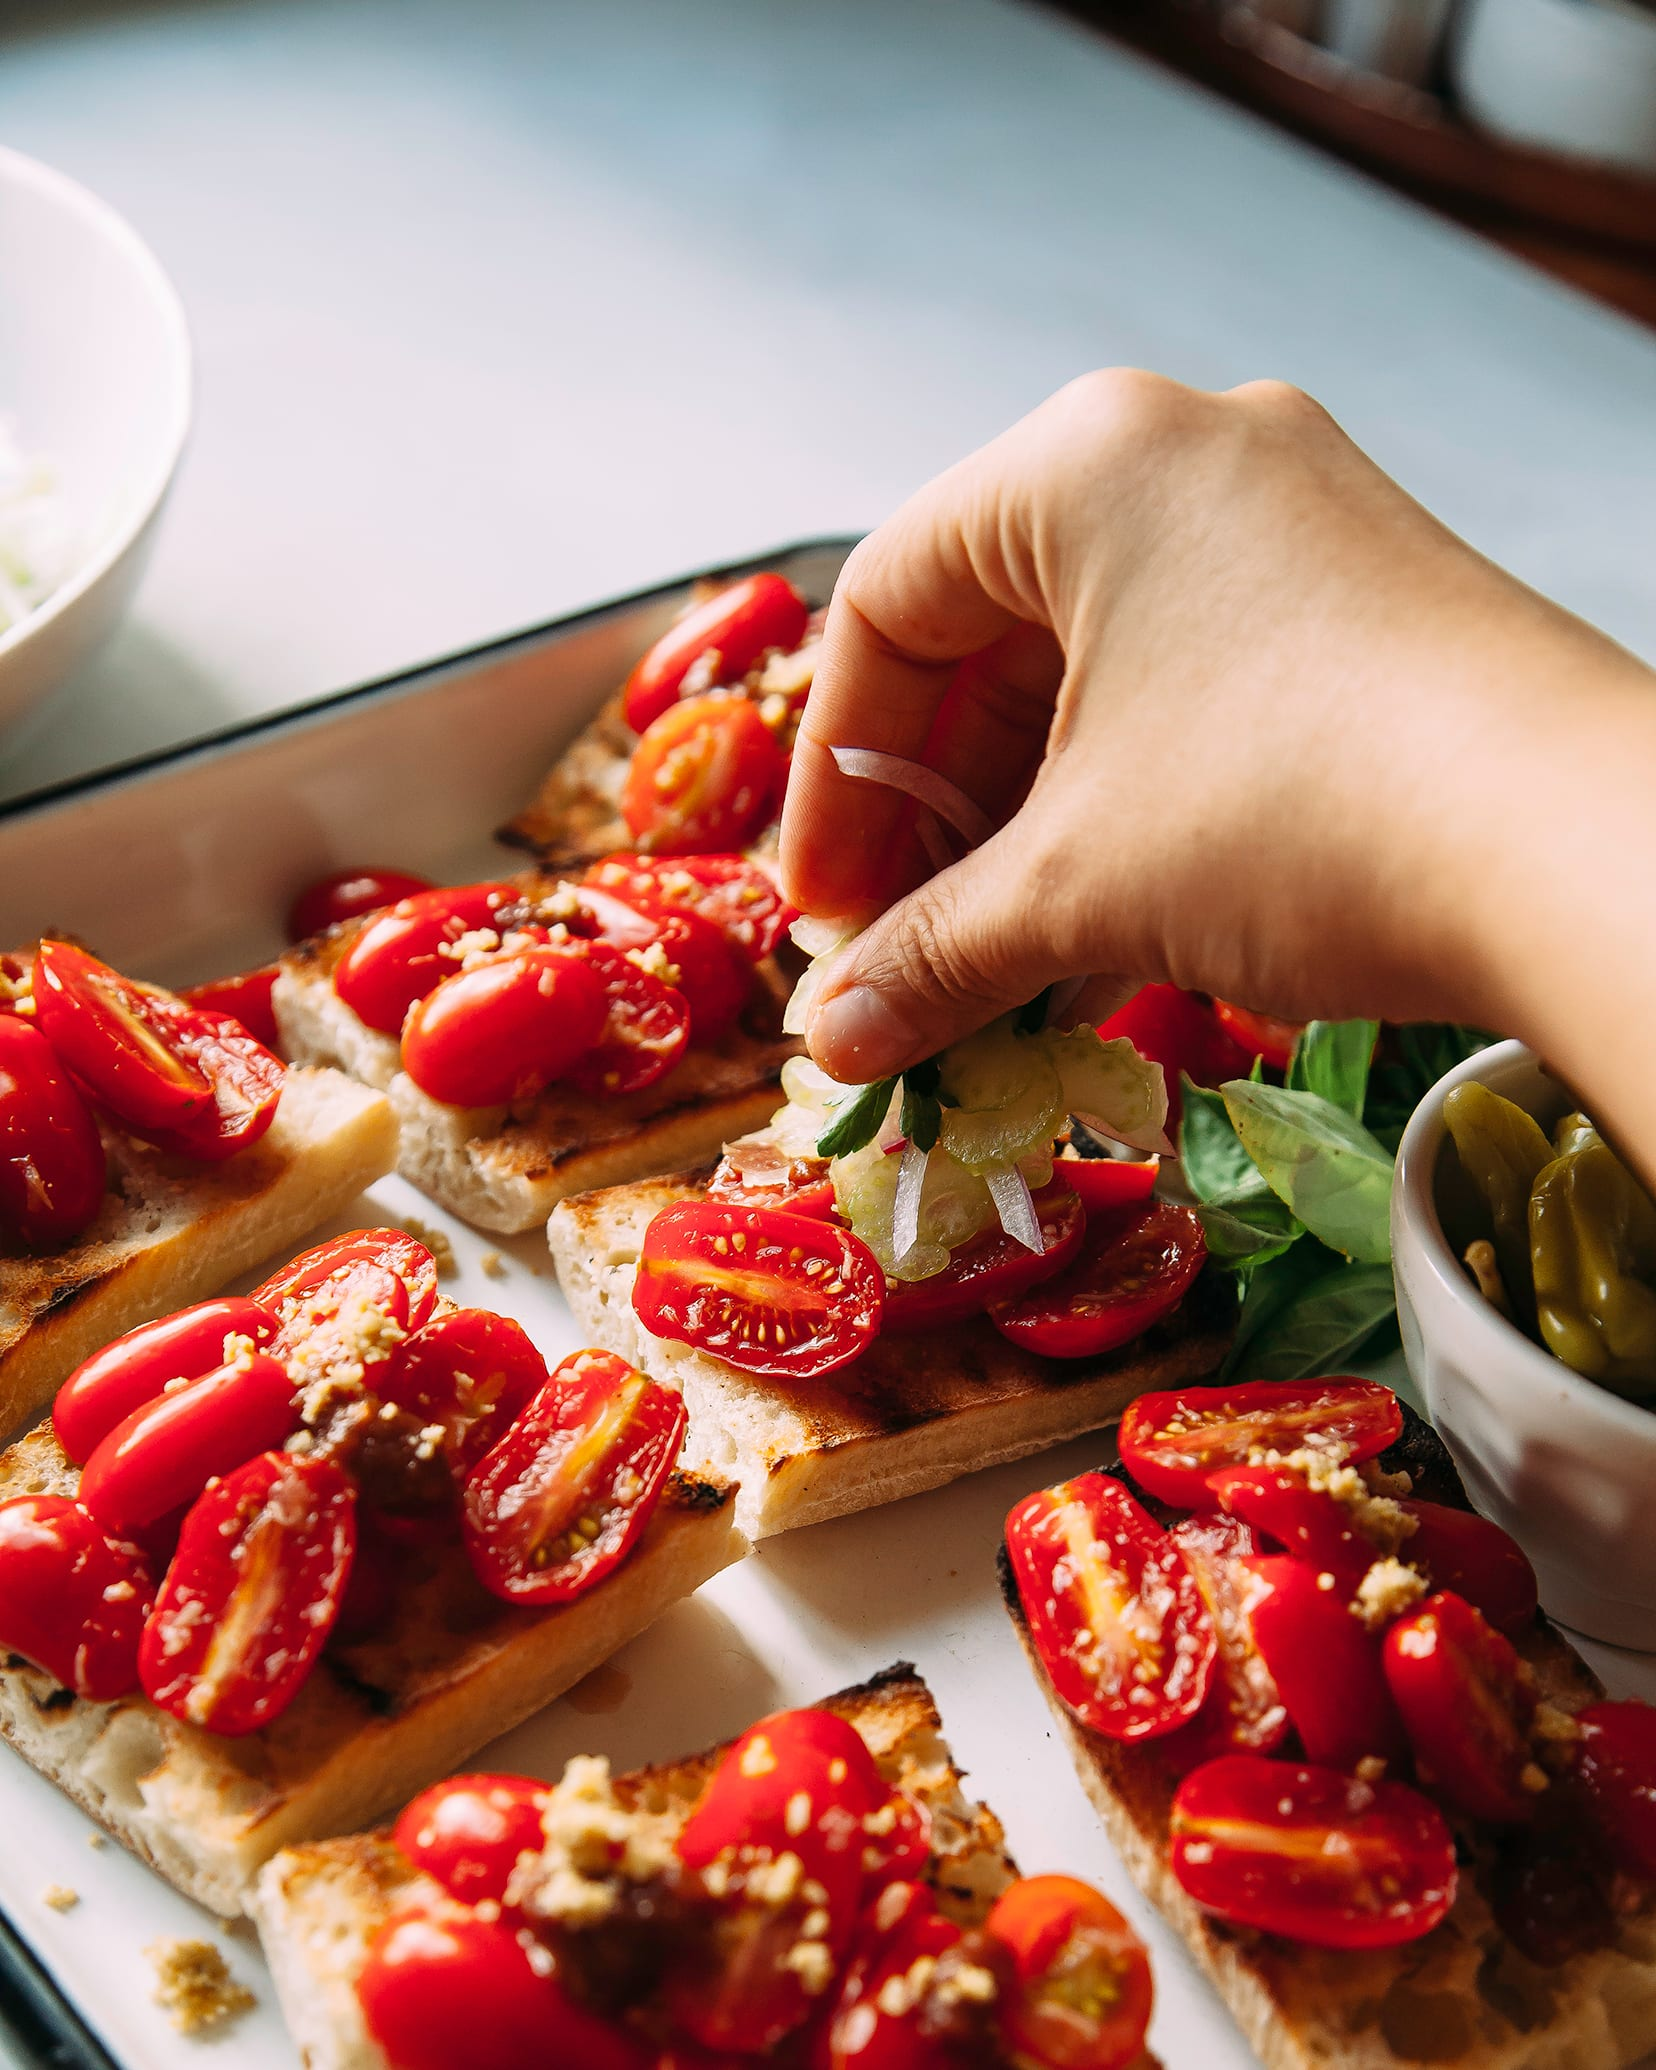 A hand is putting garnishes on top of Bloody Mary bruschetta.